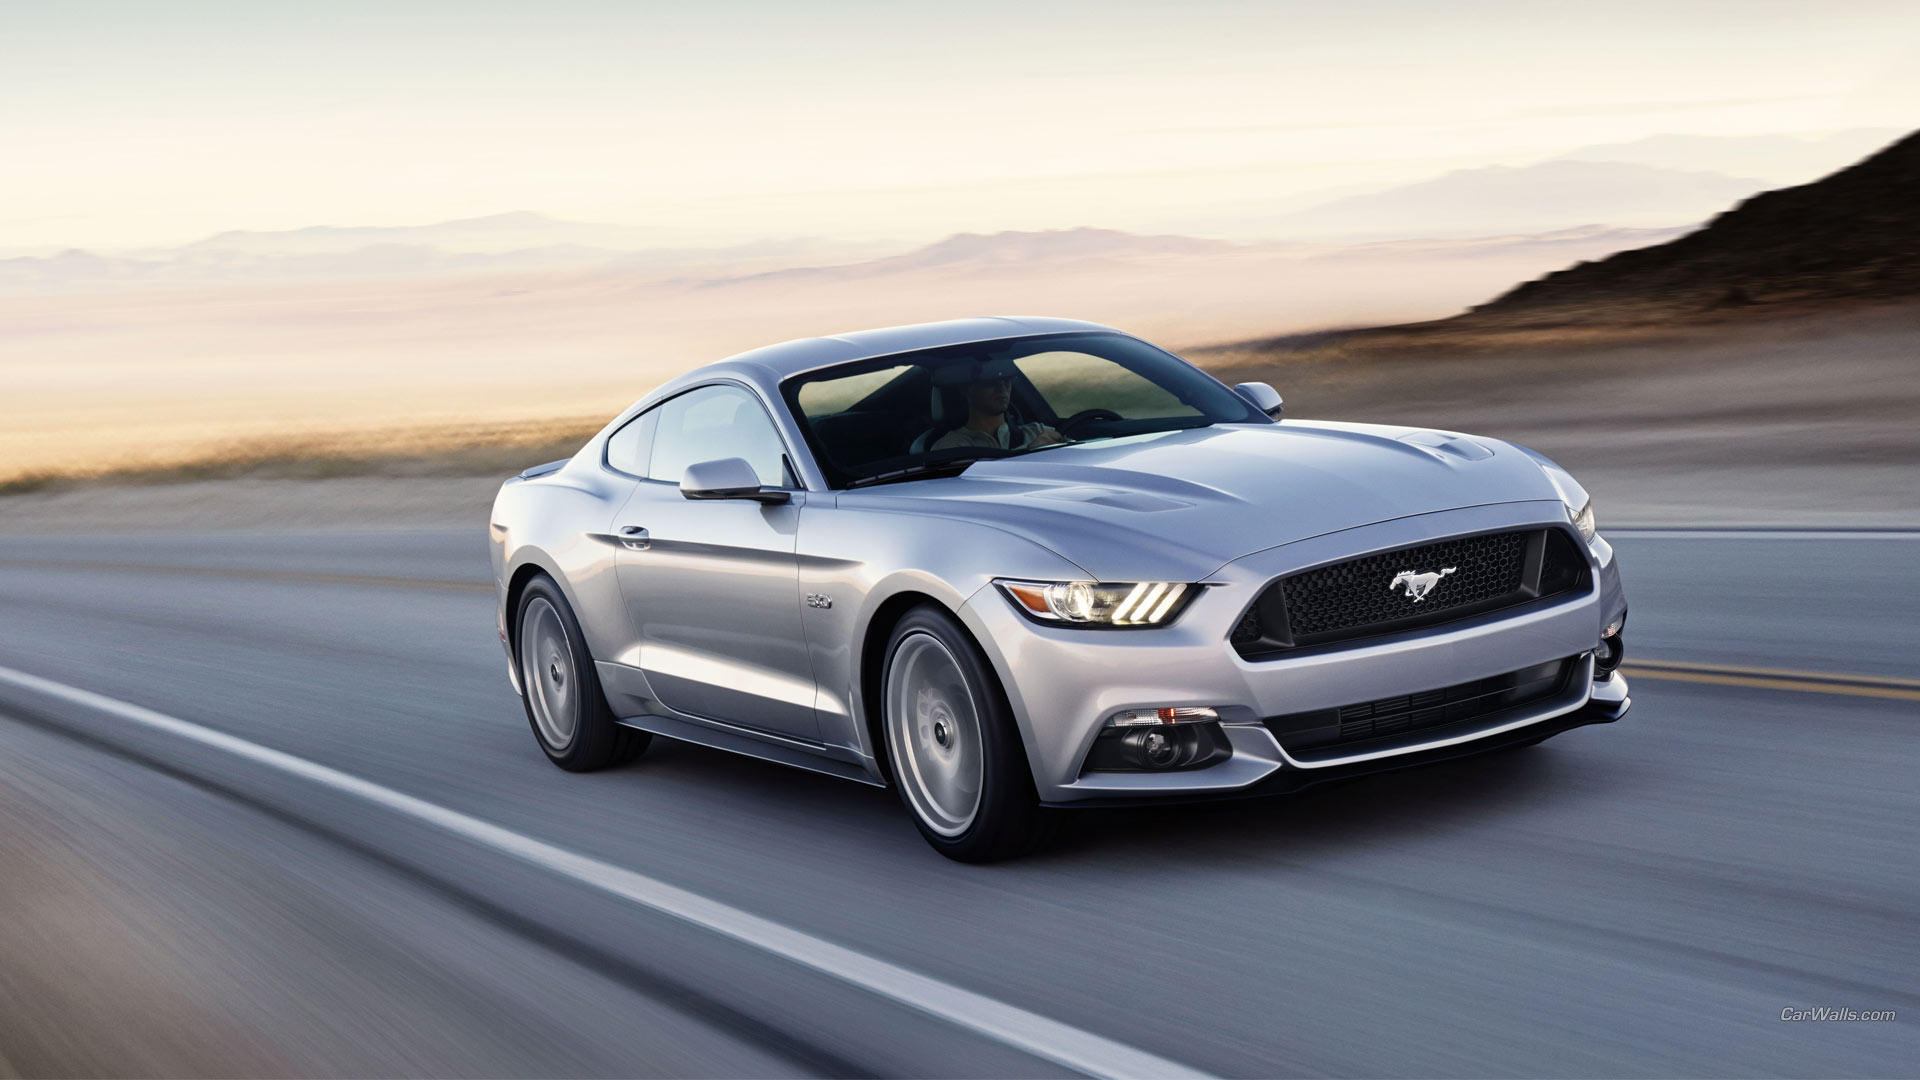 2015 Ford Mustang GT Computer Wallpapers Desktop Backgrounds 1920x1080